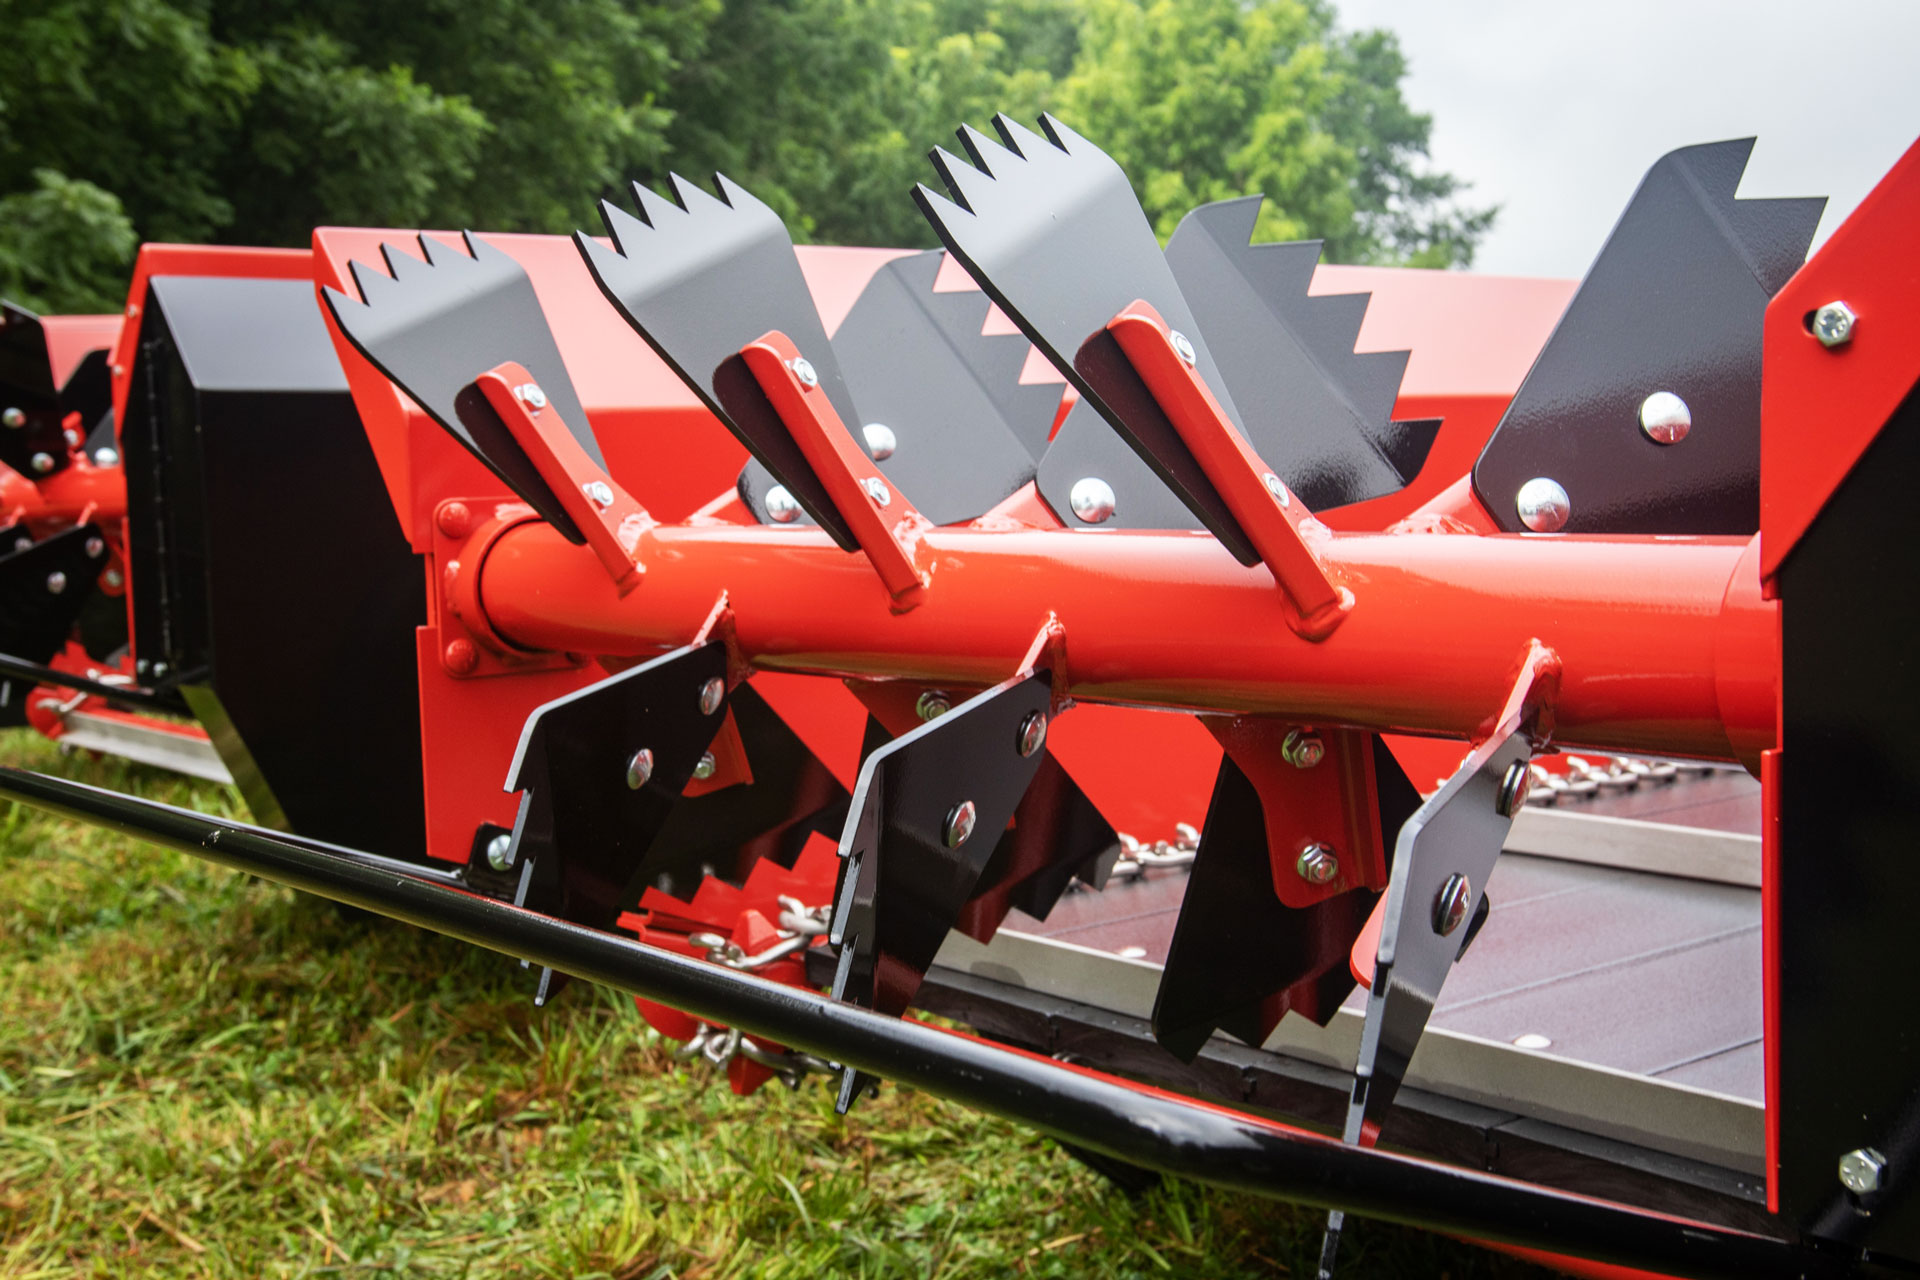 PTO Horse manure spreader with replaceable rooster comb spreader paddles.